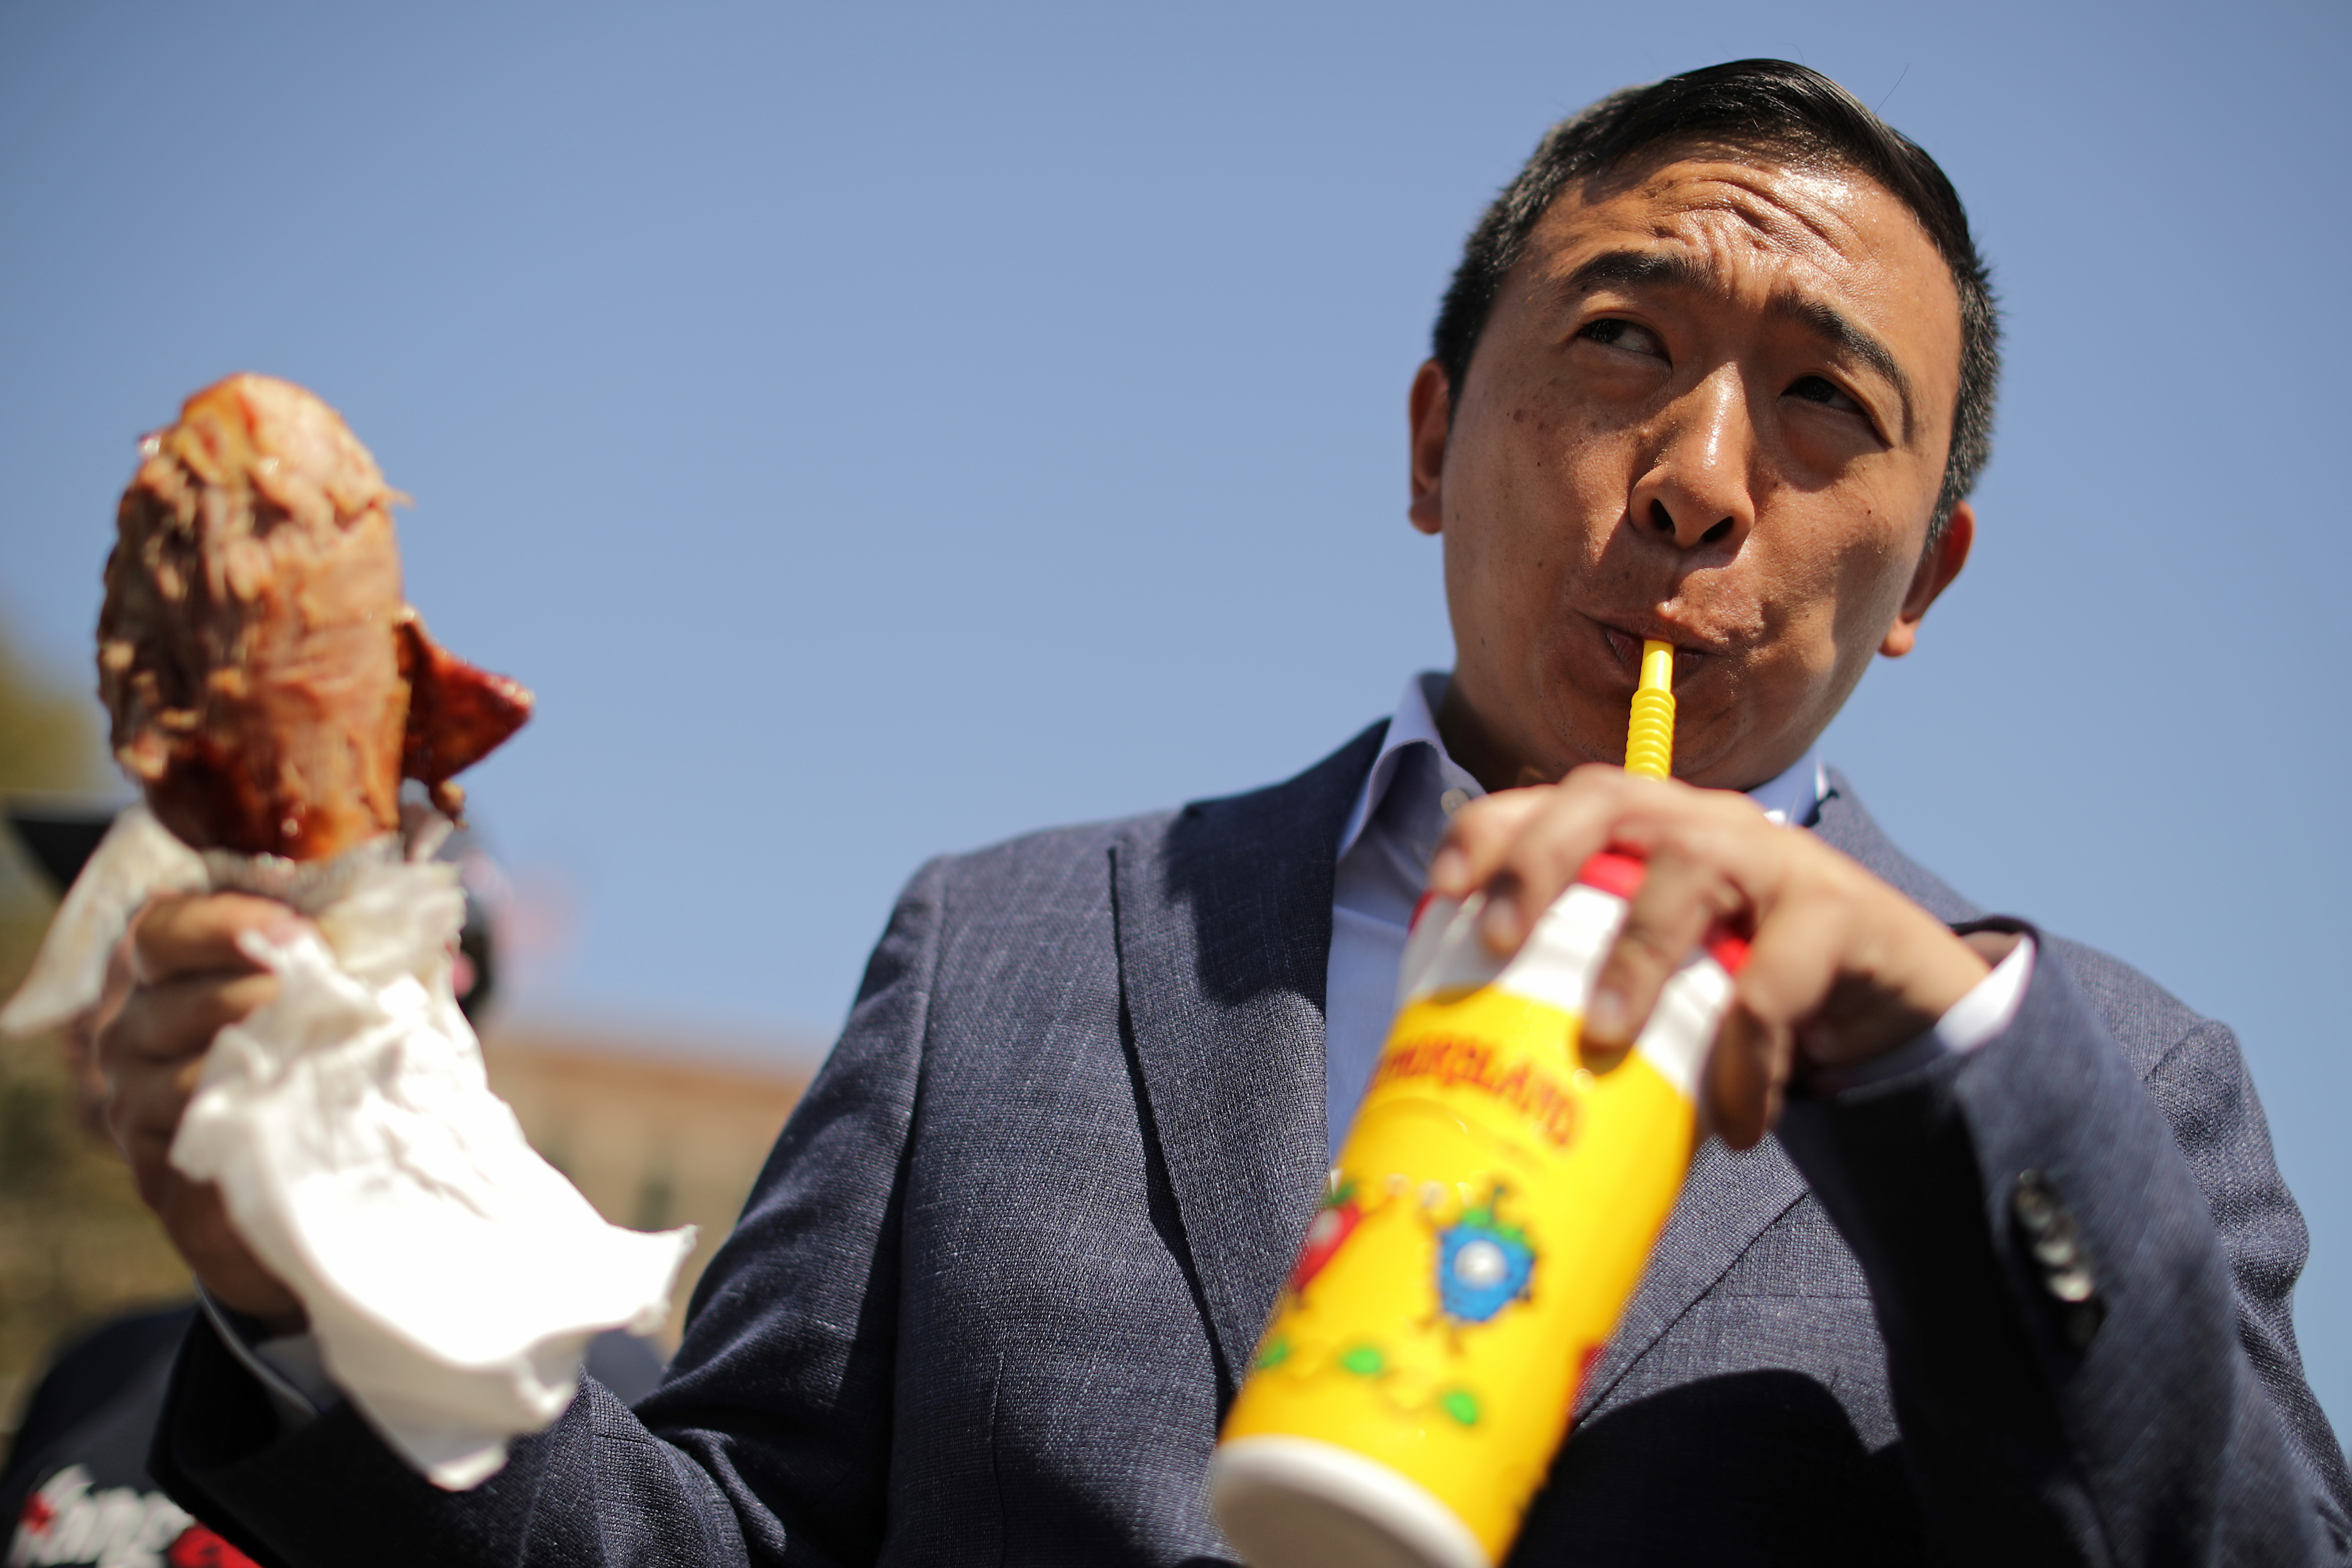 Andrew Yang Is Catching Heat For Comments On The Difficulties Of His 2-Bedroom Apartment